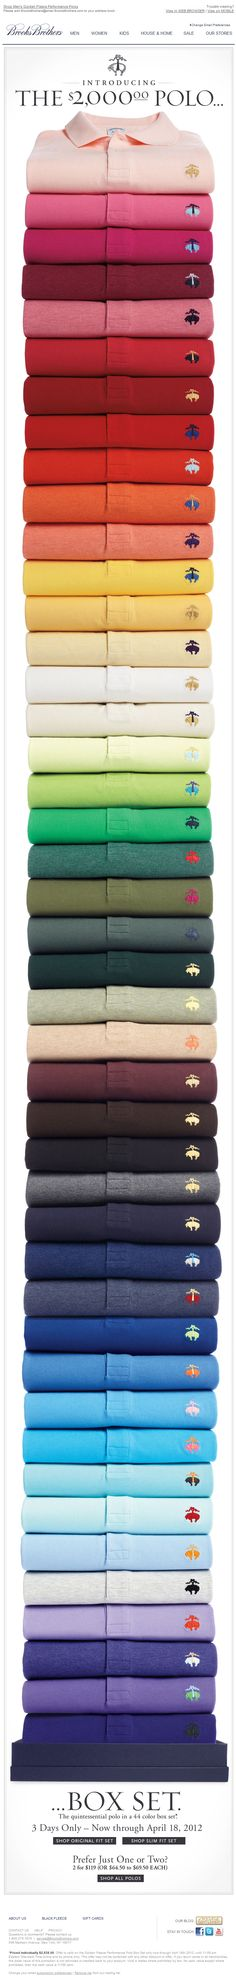 Brooks Brothers >> sent 4/16/12 >> $2,000.00? >> Brooks Brothers gets subscribers spinning their scroll wheels and swiping their fingers with this delightfully long email that shows the impressive color selection of their polos. The offer itself is a little absurd, although it is a good discount, and at its heart is more for shock value. –Chad White, Principal of Marketing Research